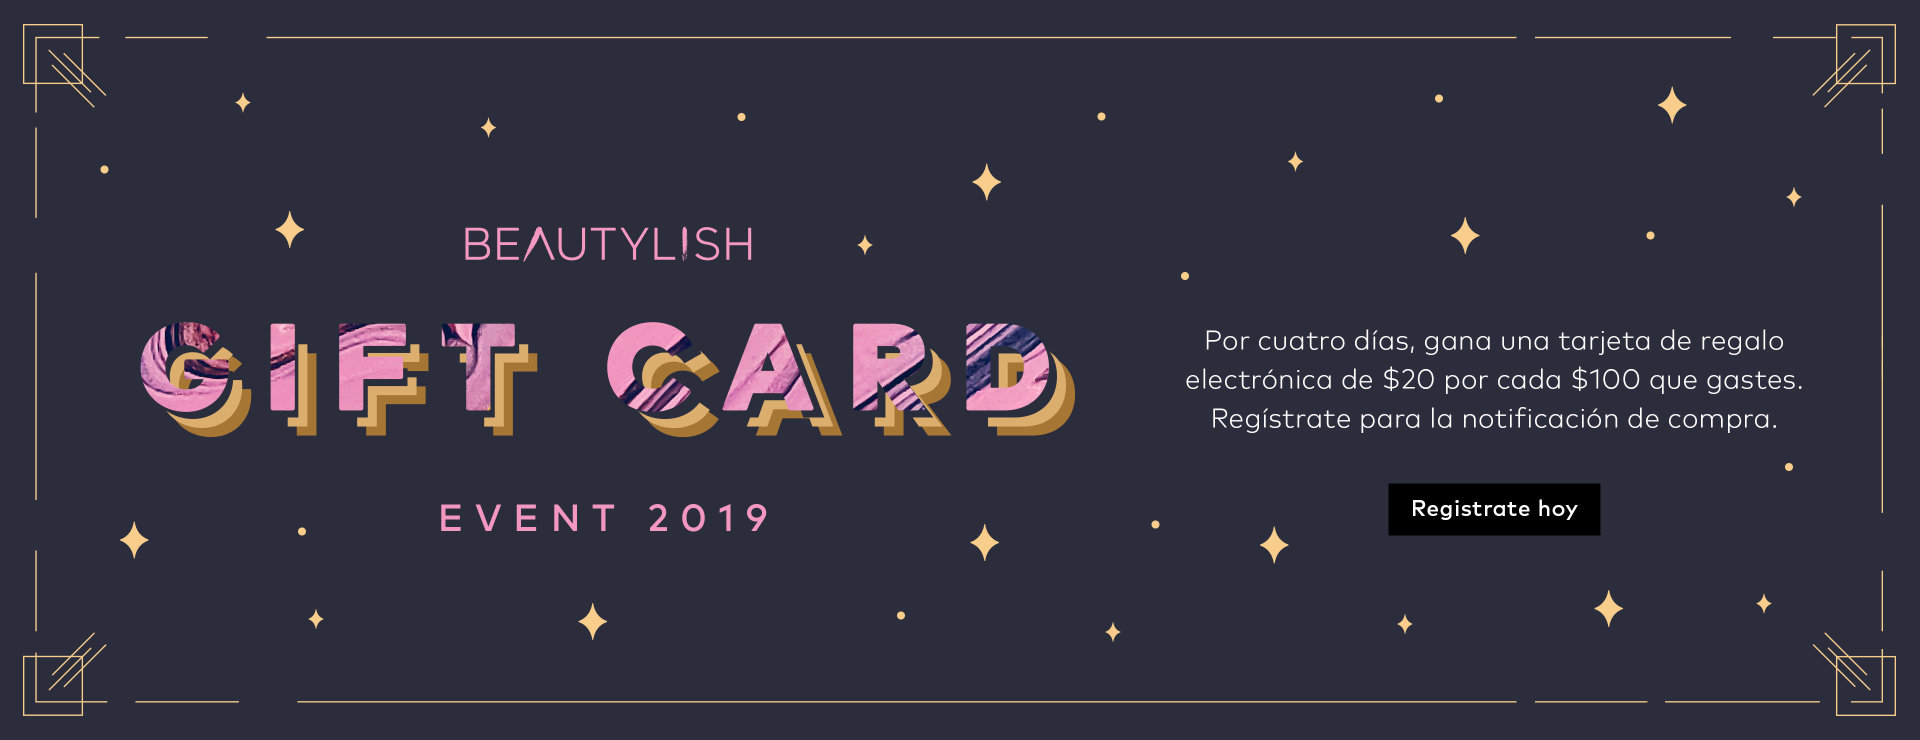 Gift Card Event 2019 –Sign Up for Notifications